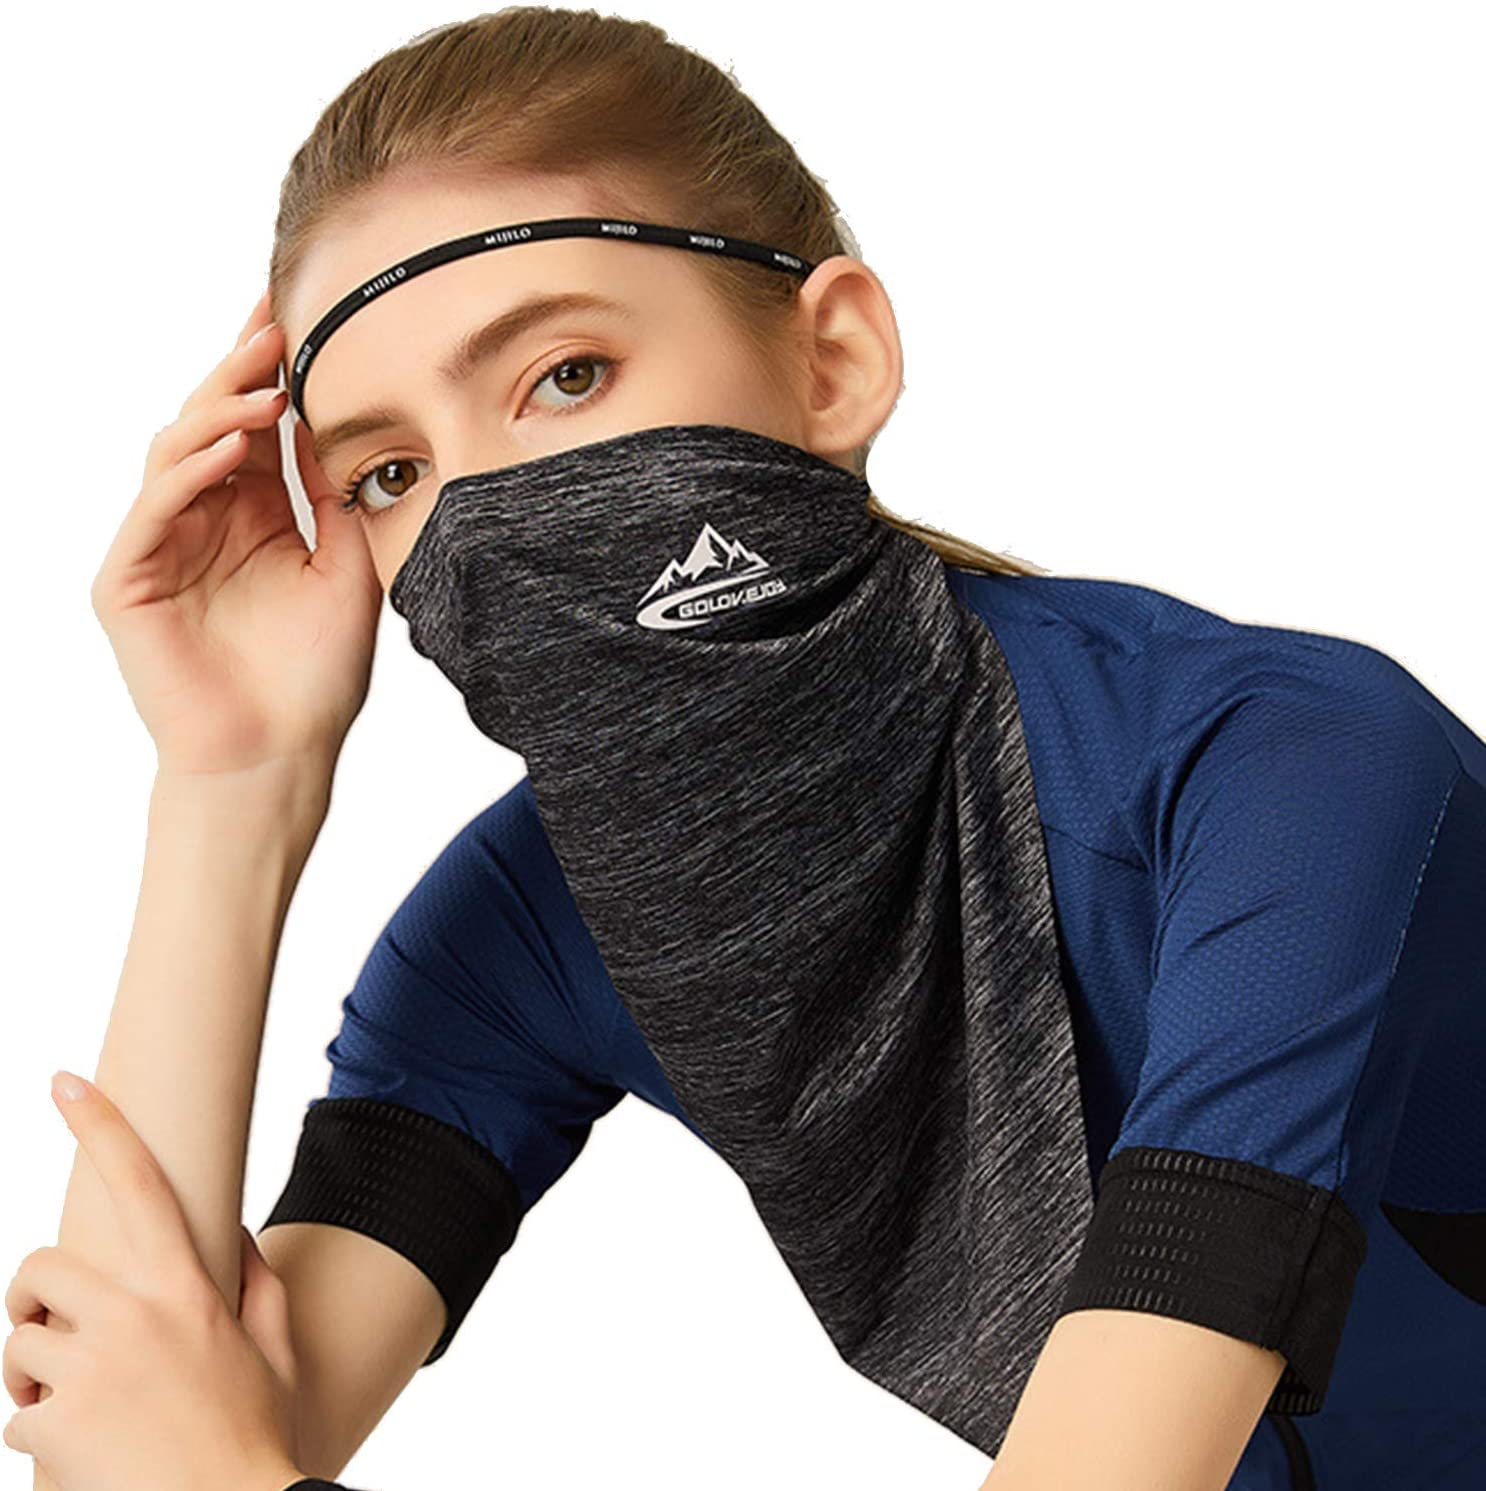 Eroilor Stretchable Tubular Multifunctional Headwear Breathable UPF50 Cooling Mask for Summer Outdoor Sports